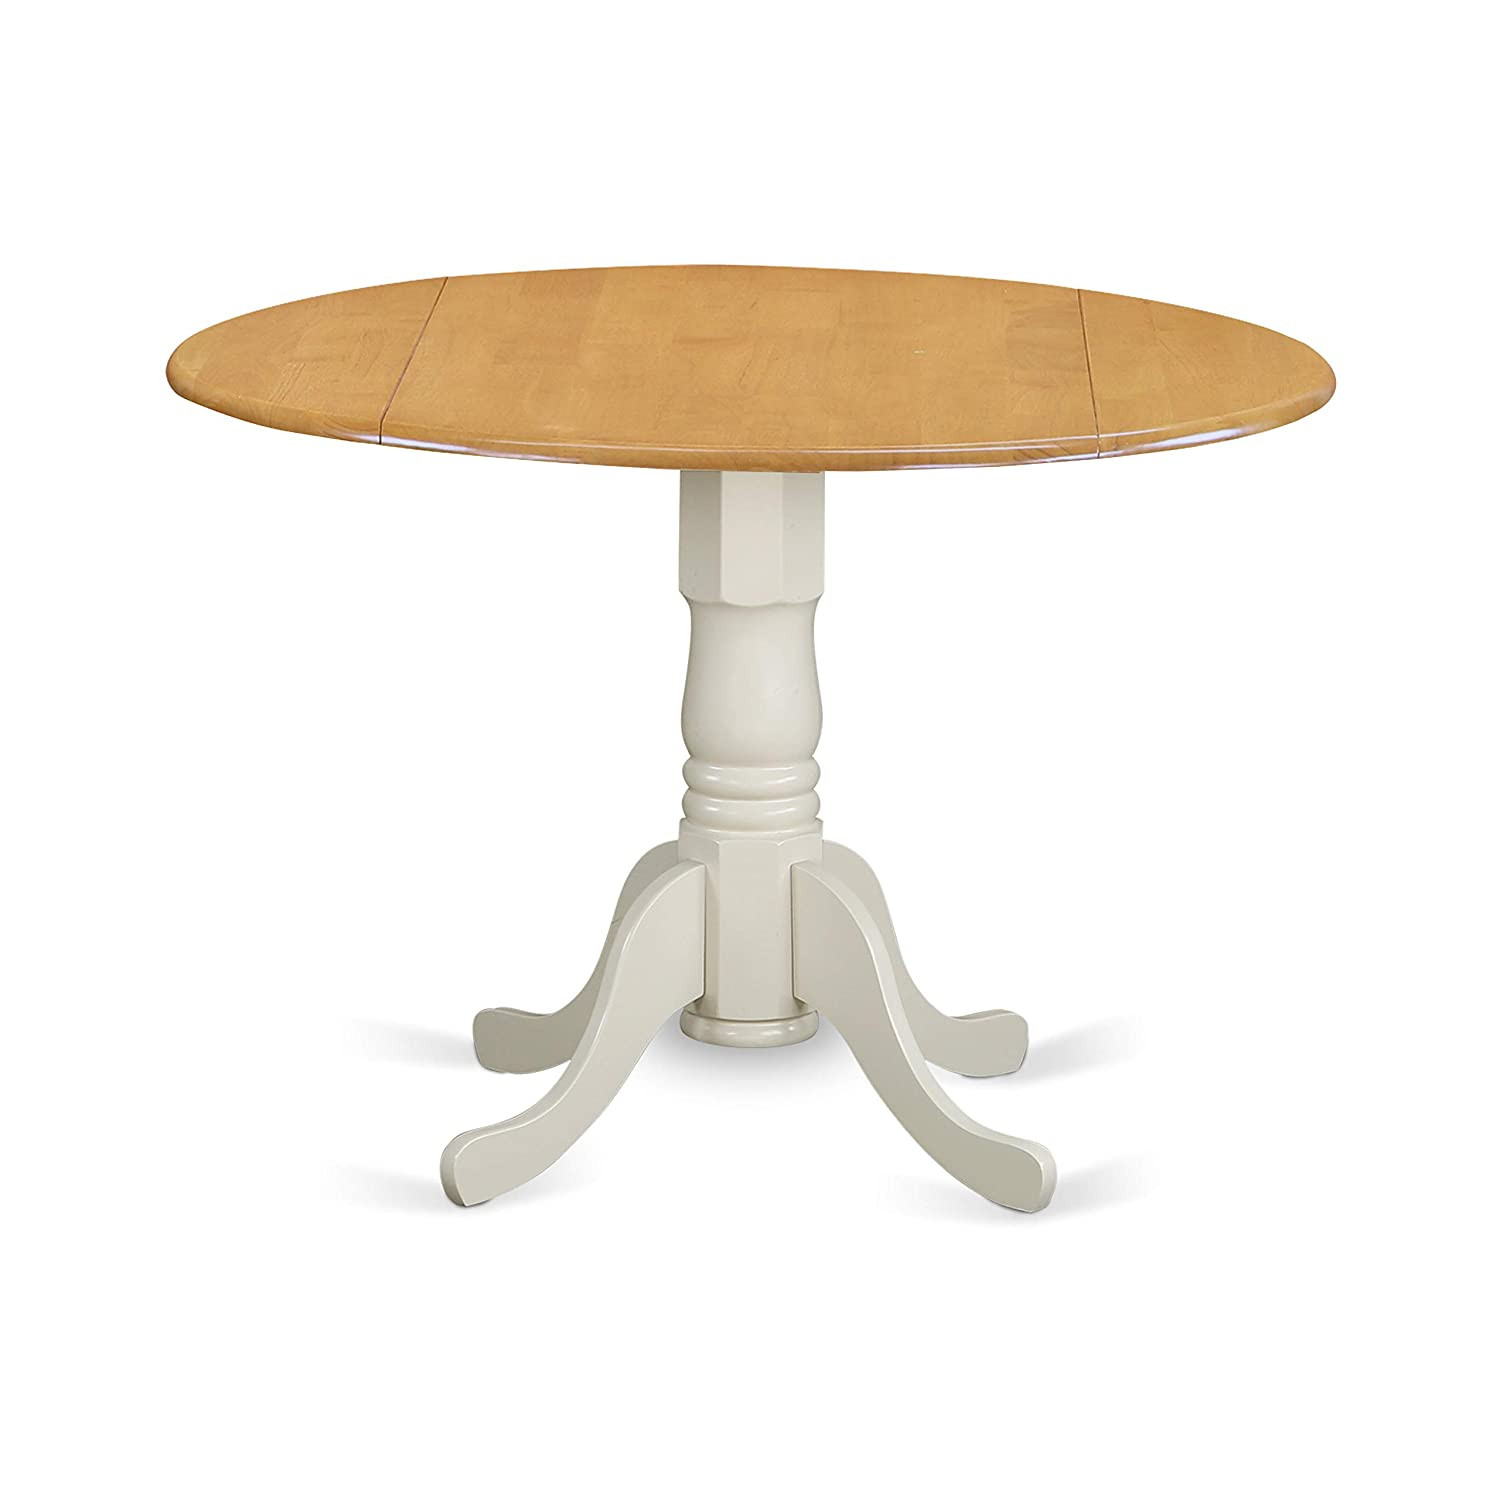 """East West Furniture DLT-OLW-TP Dublin Round Table with Two 9"""" Drop Leaves in Oak and Linen White Finish"""